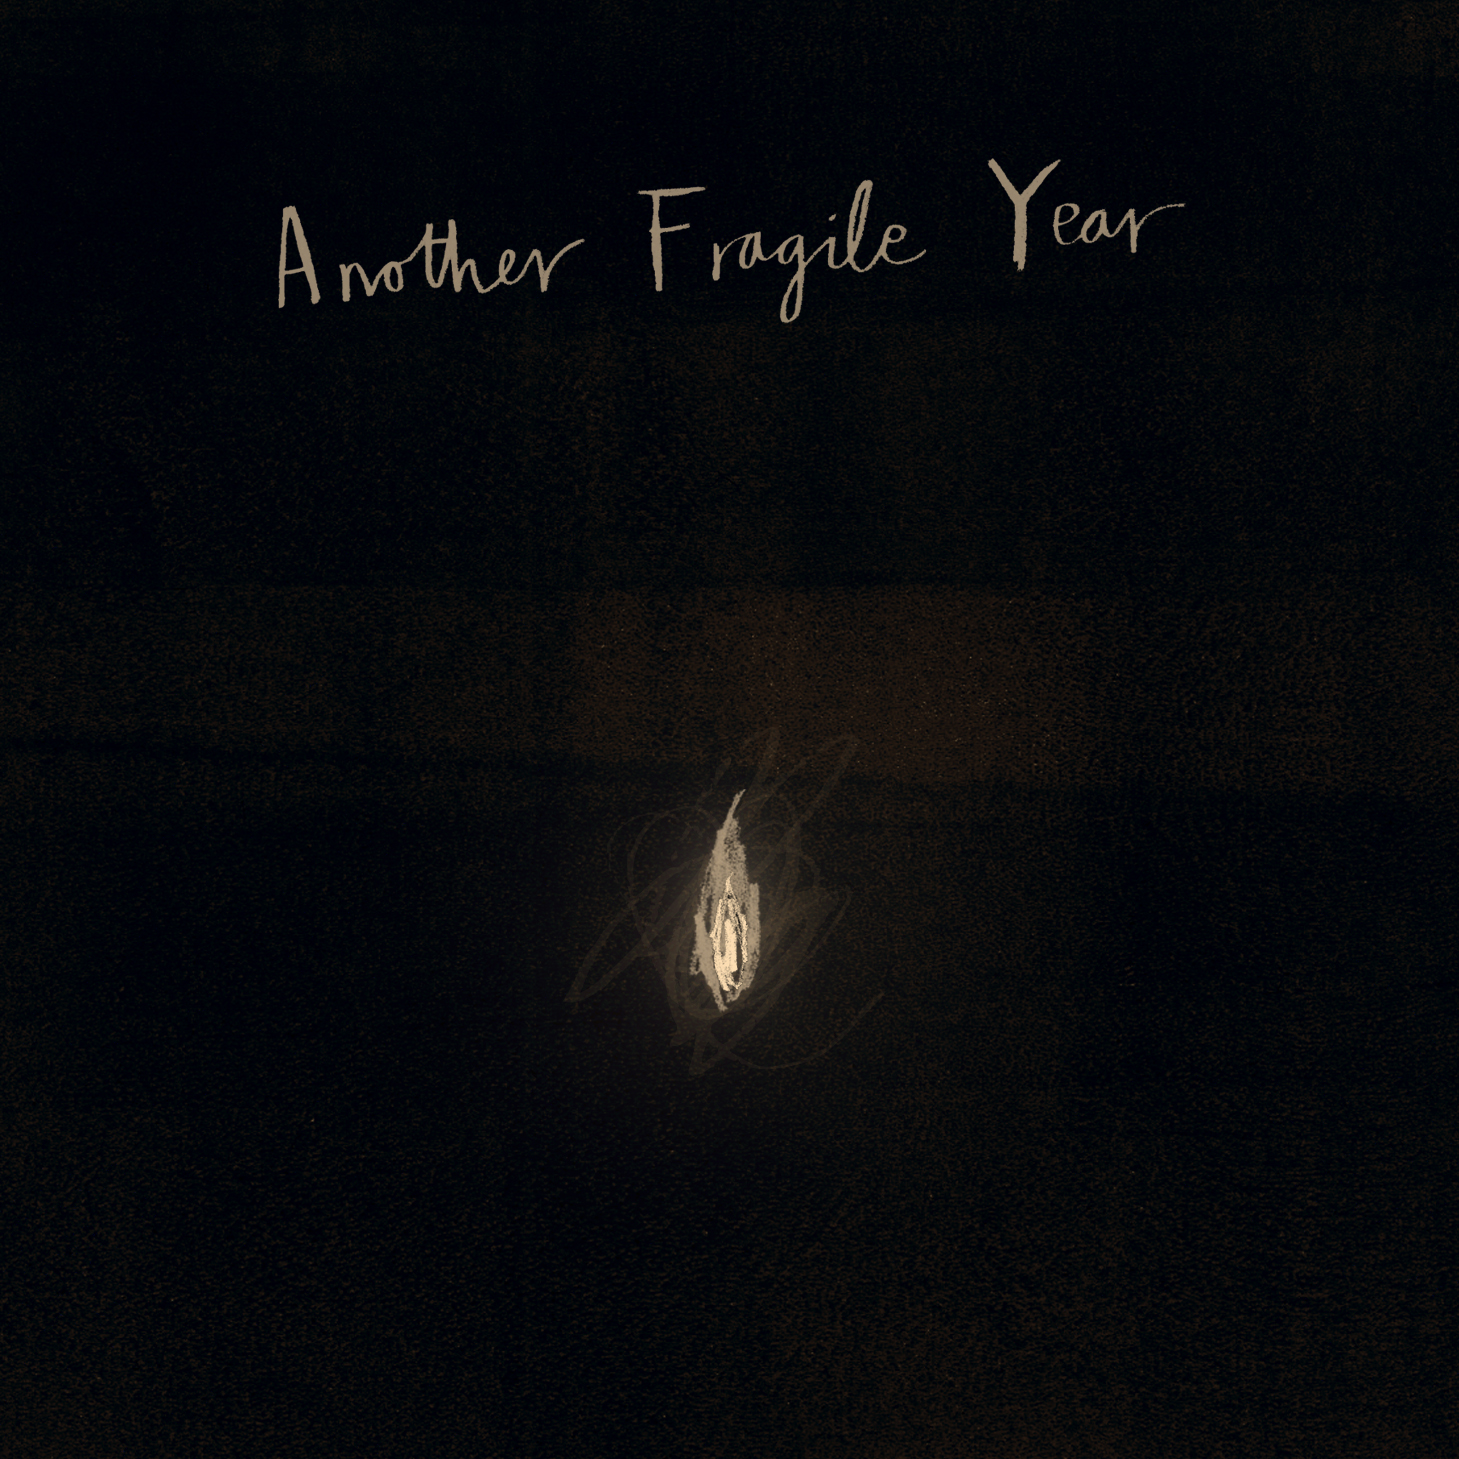 Another-Fragile-Year-CD-Artwork